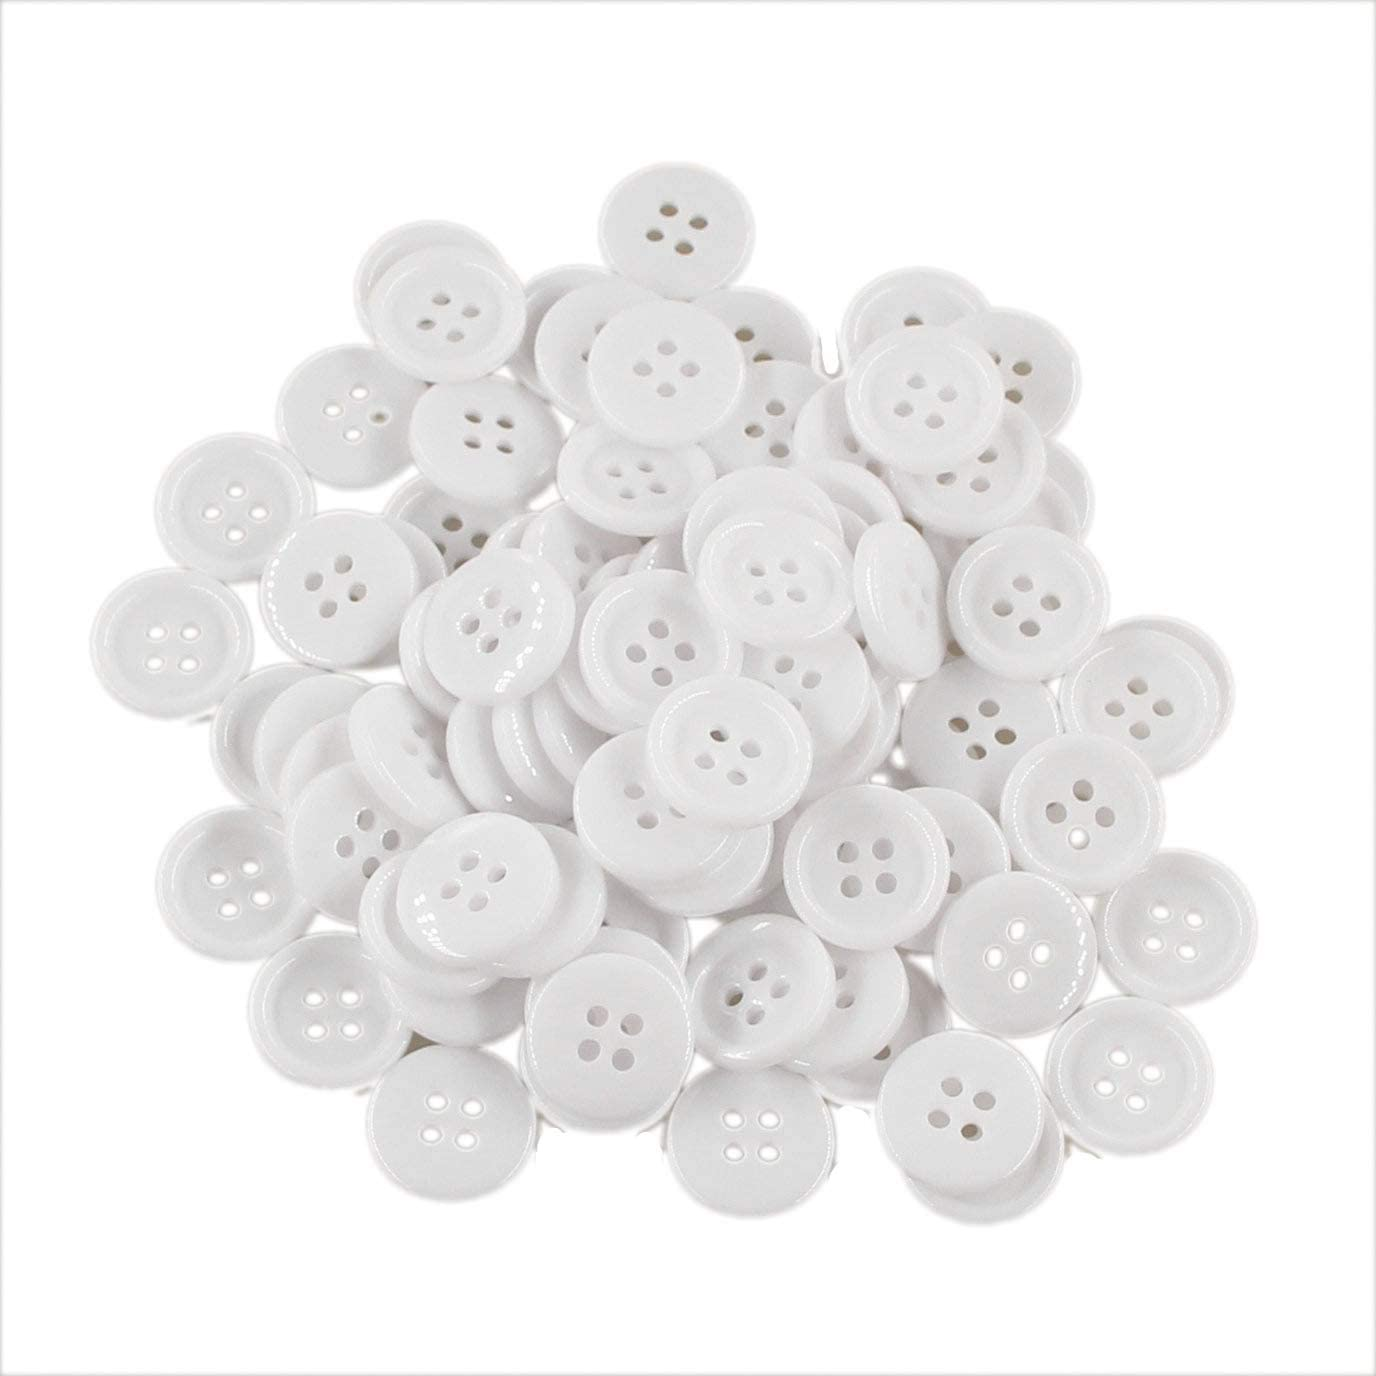 13//16 Flatback Resin Buttons Sewing Buttons 20mm DIY Crafts Childrens Manual Button Colored Black Pack of 100 Pcs Leekayer